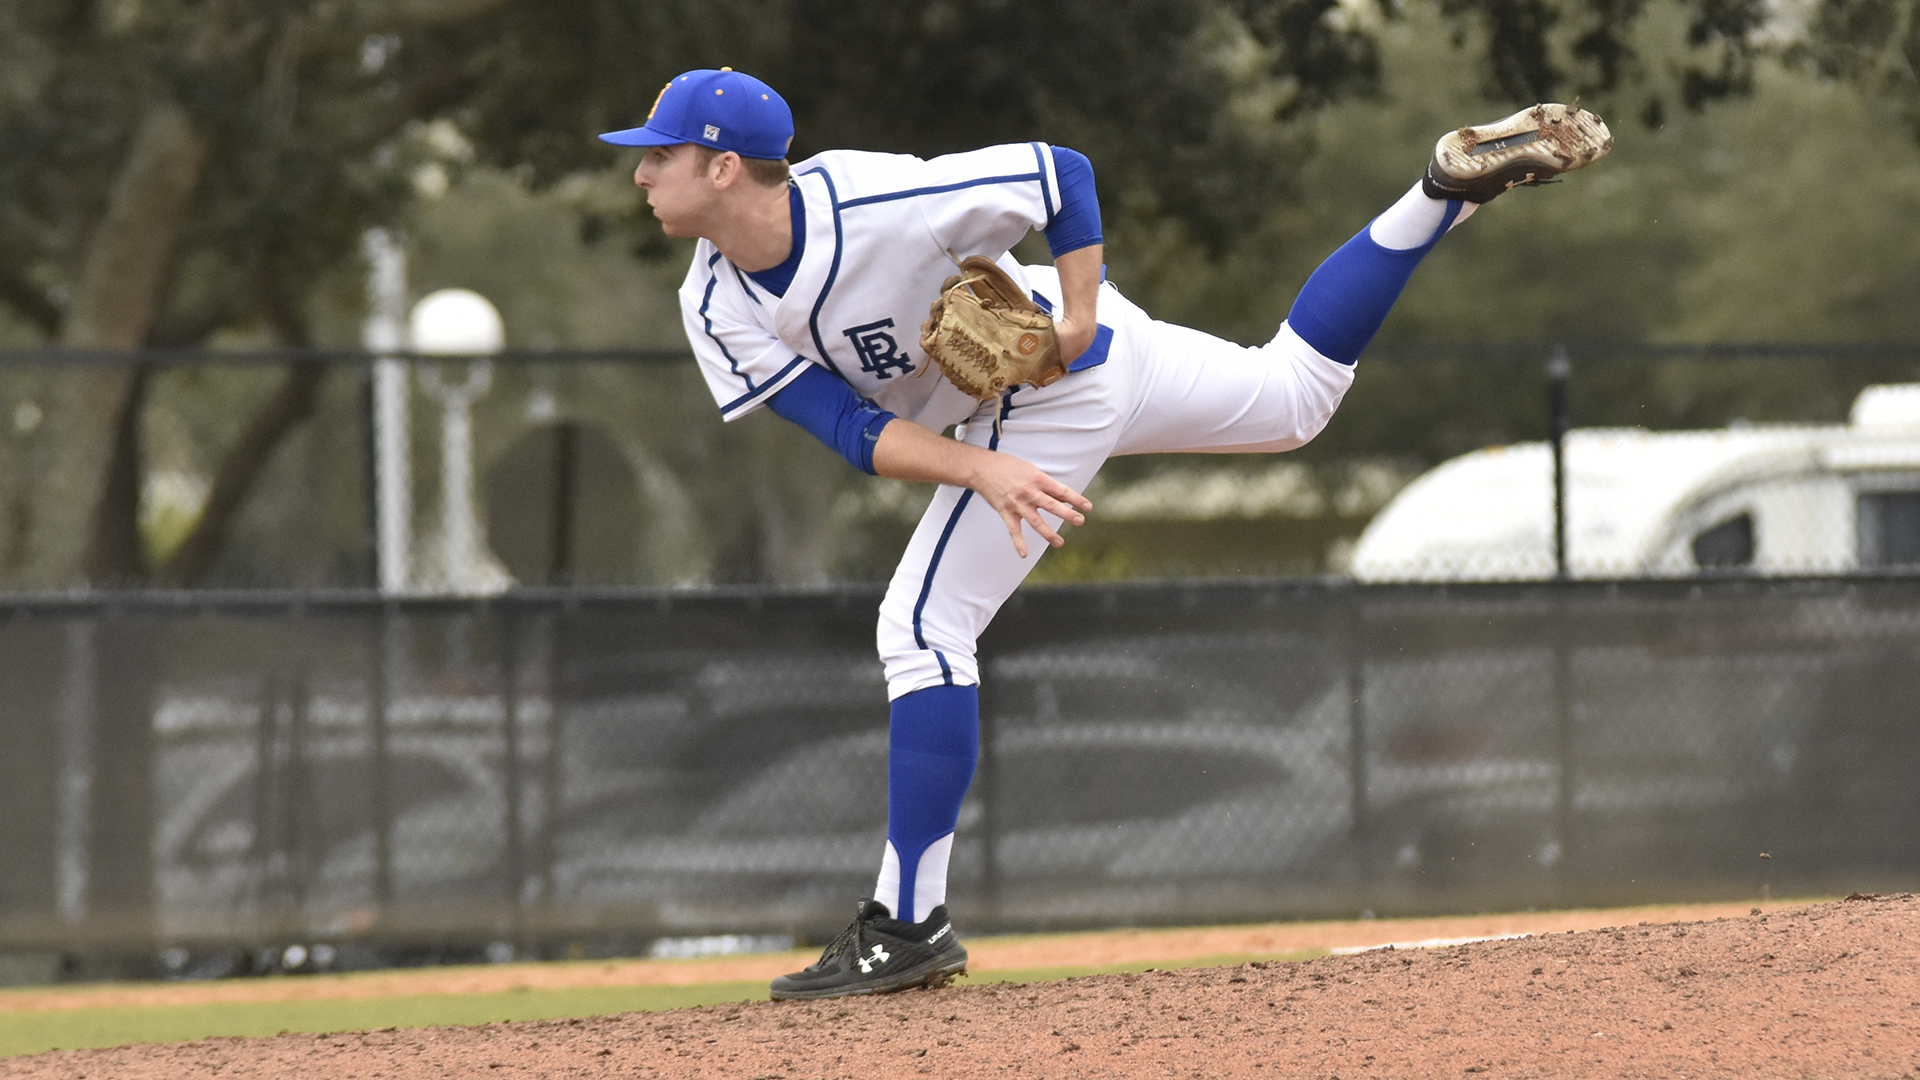 Nanaimo Pirates grad Garrett Goodall (Nanaimo, BC) had an 8-2 record with a 3.11 ERA in 84 innings for the Embry Riddle Eagles this season and was named to the All-Sunshine State Conference First Team. Photo: Embry Athletics